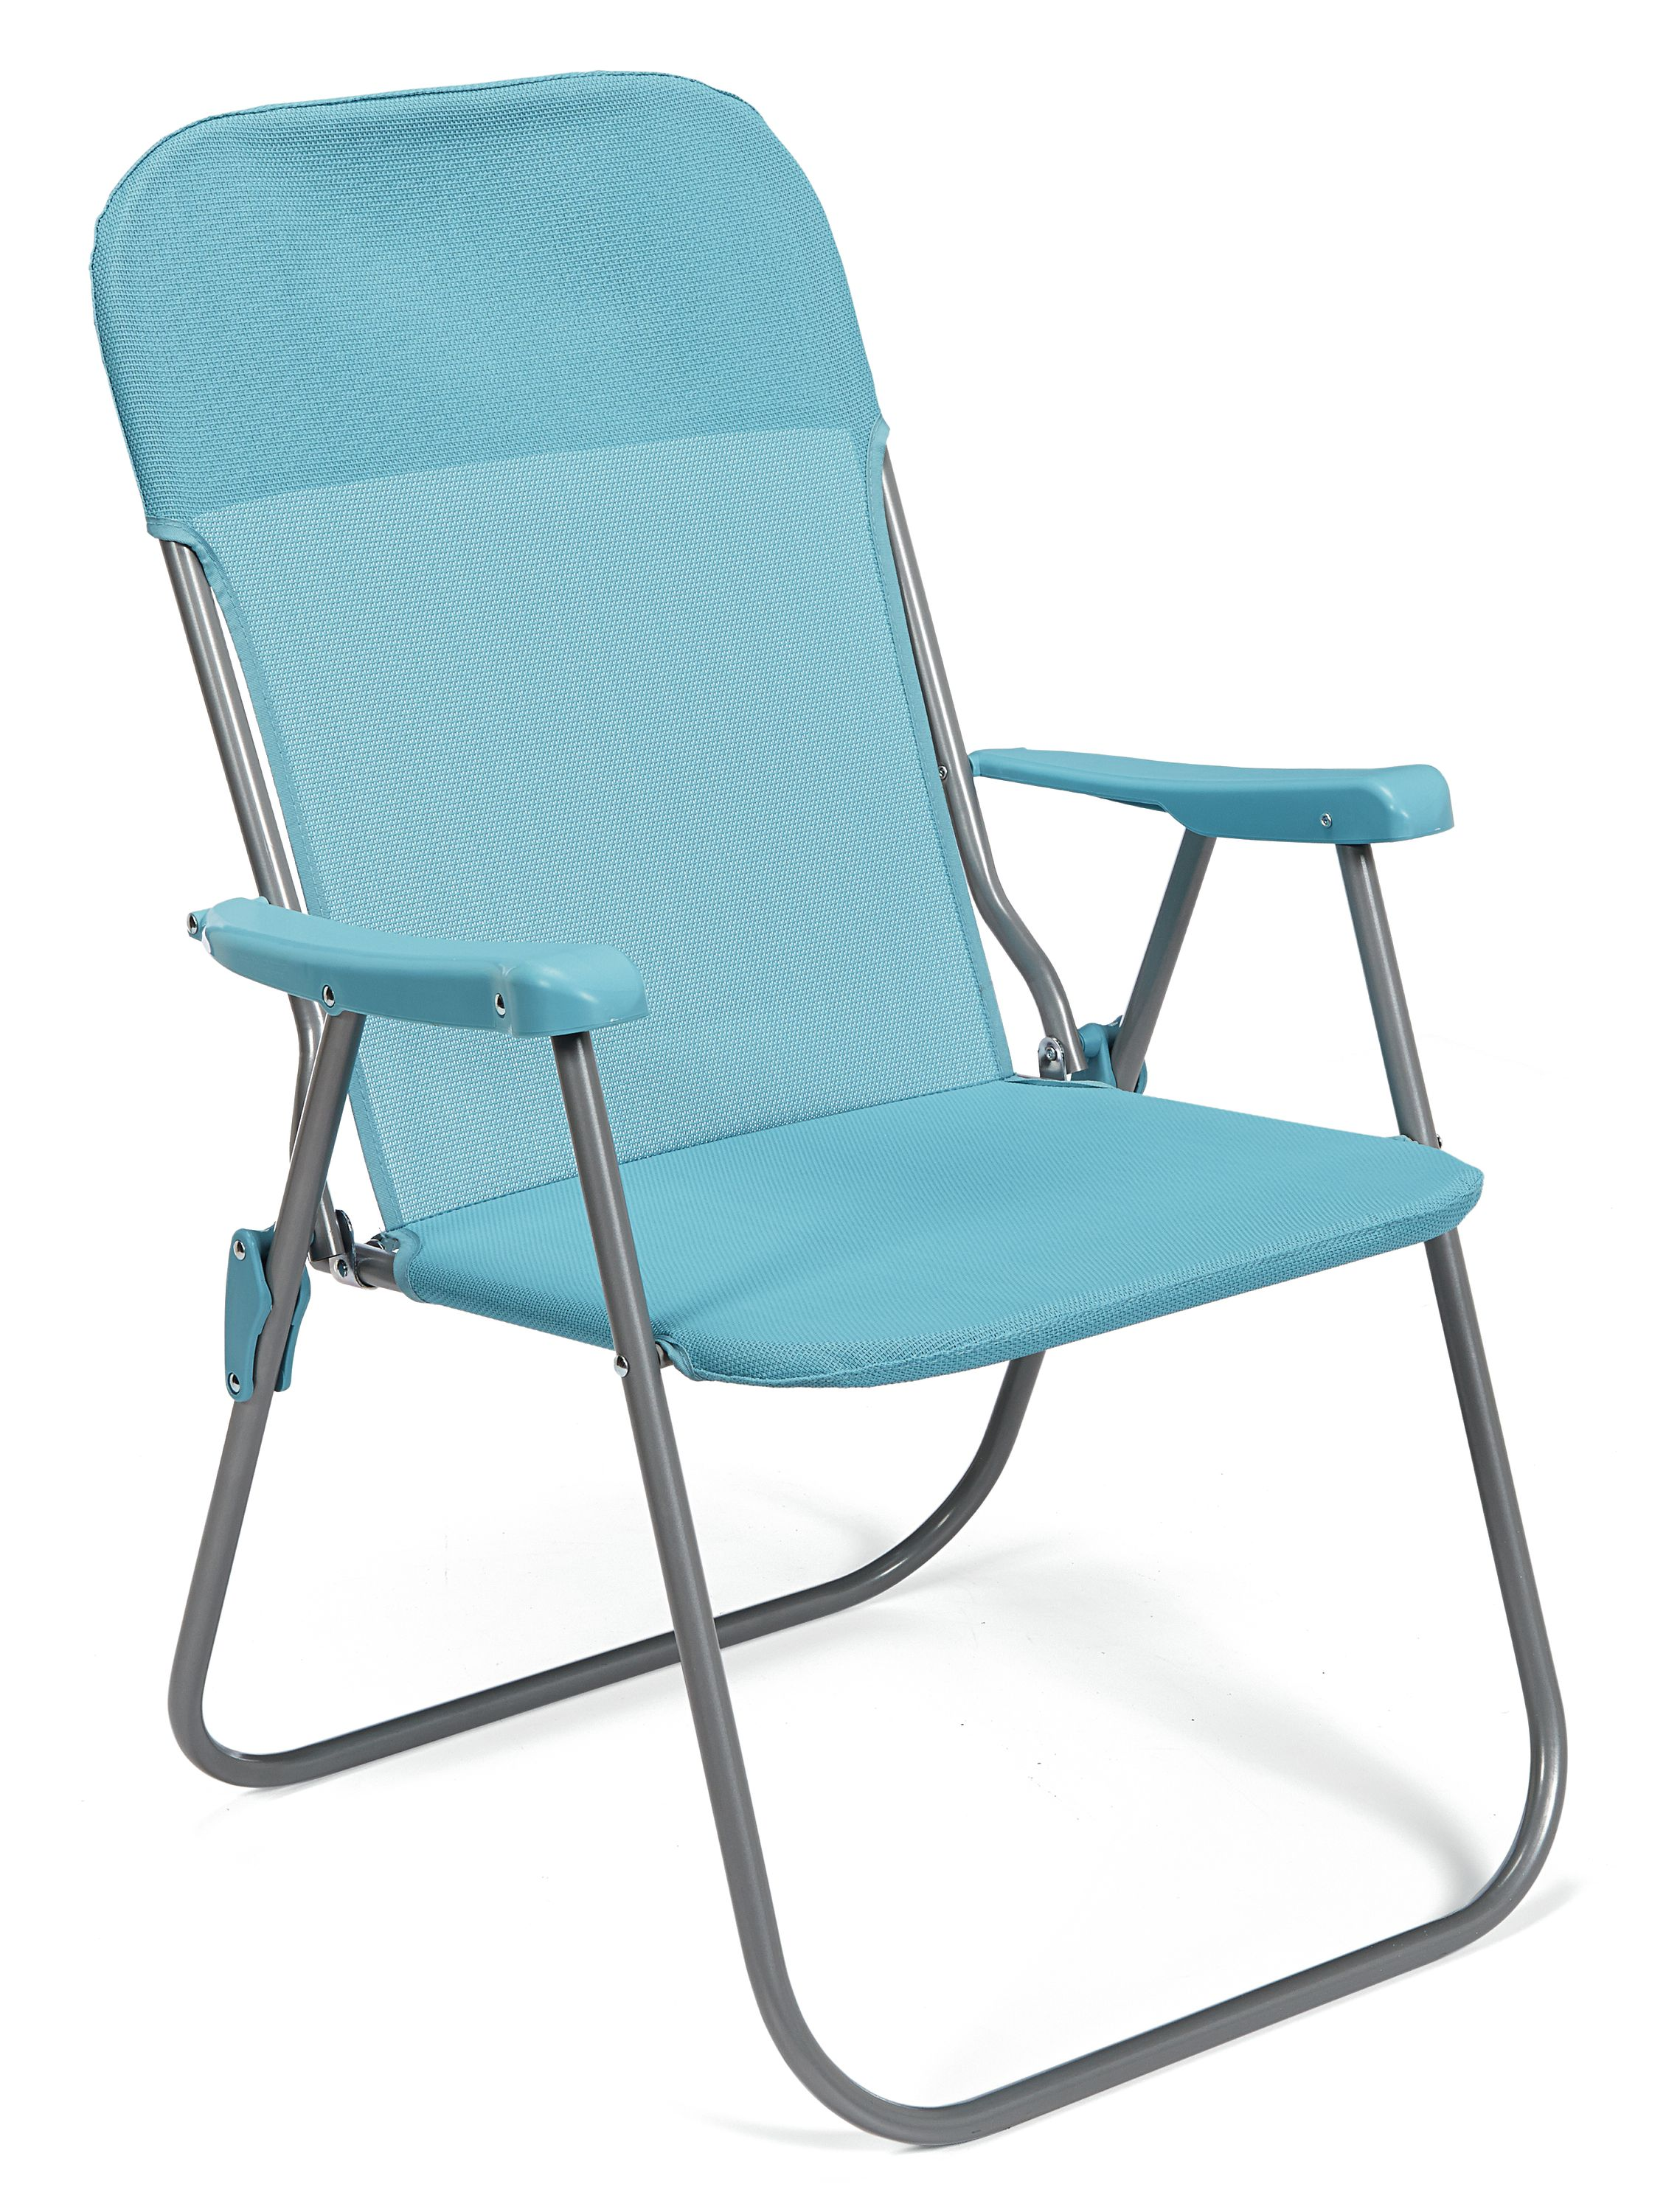 outdoor chairs kmart bleacher with backs bbq pro folding chair blue living patio